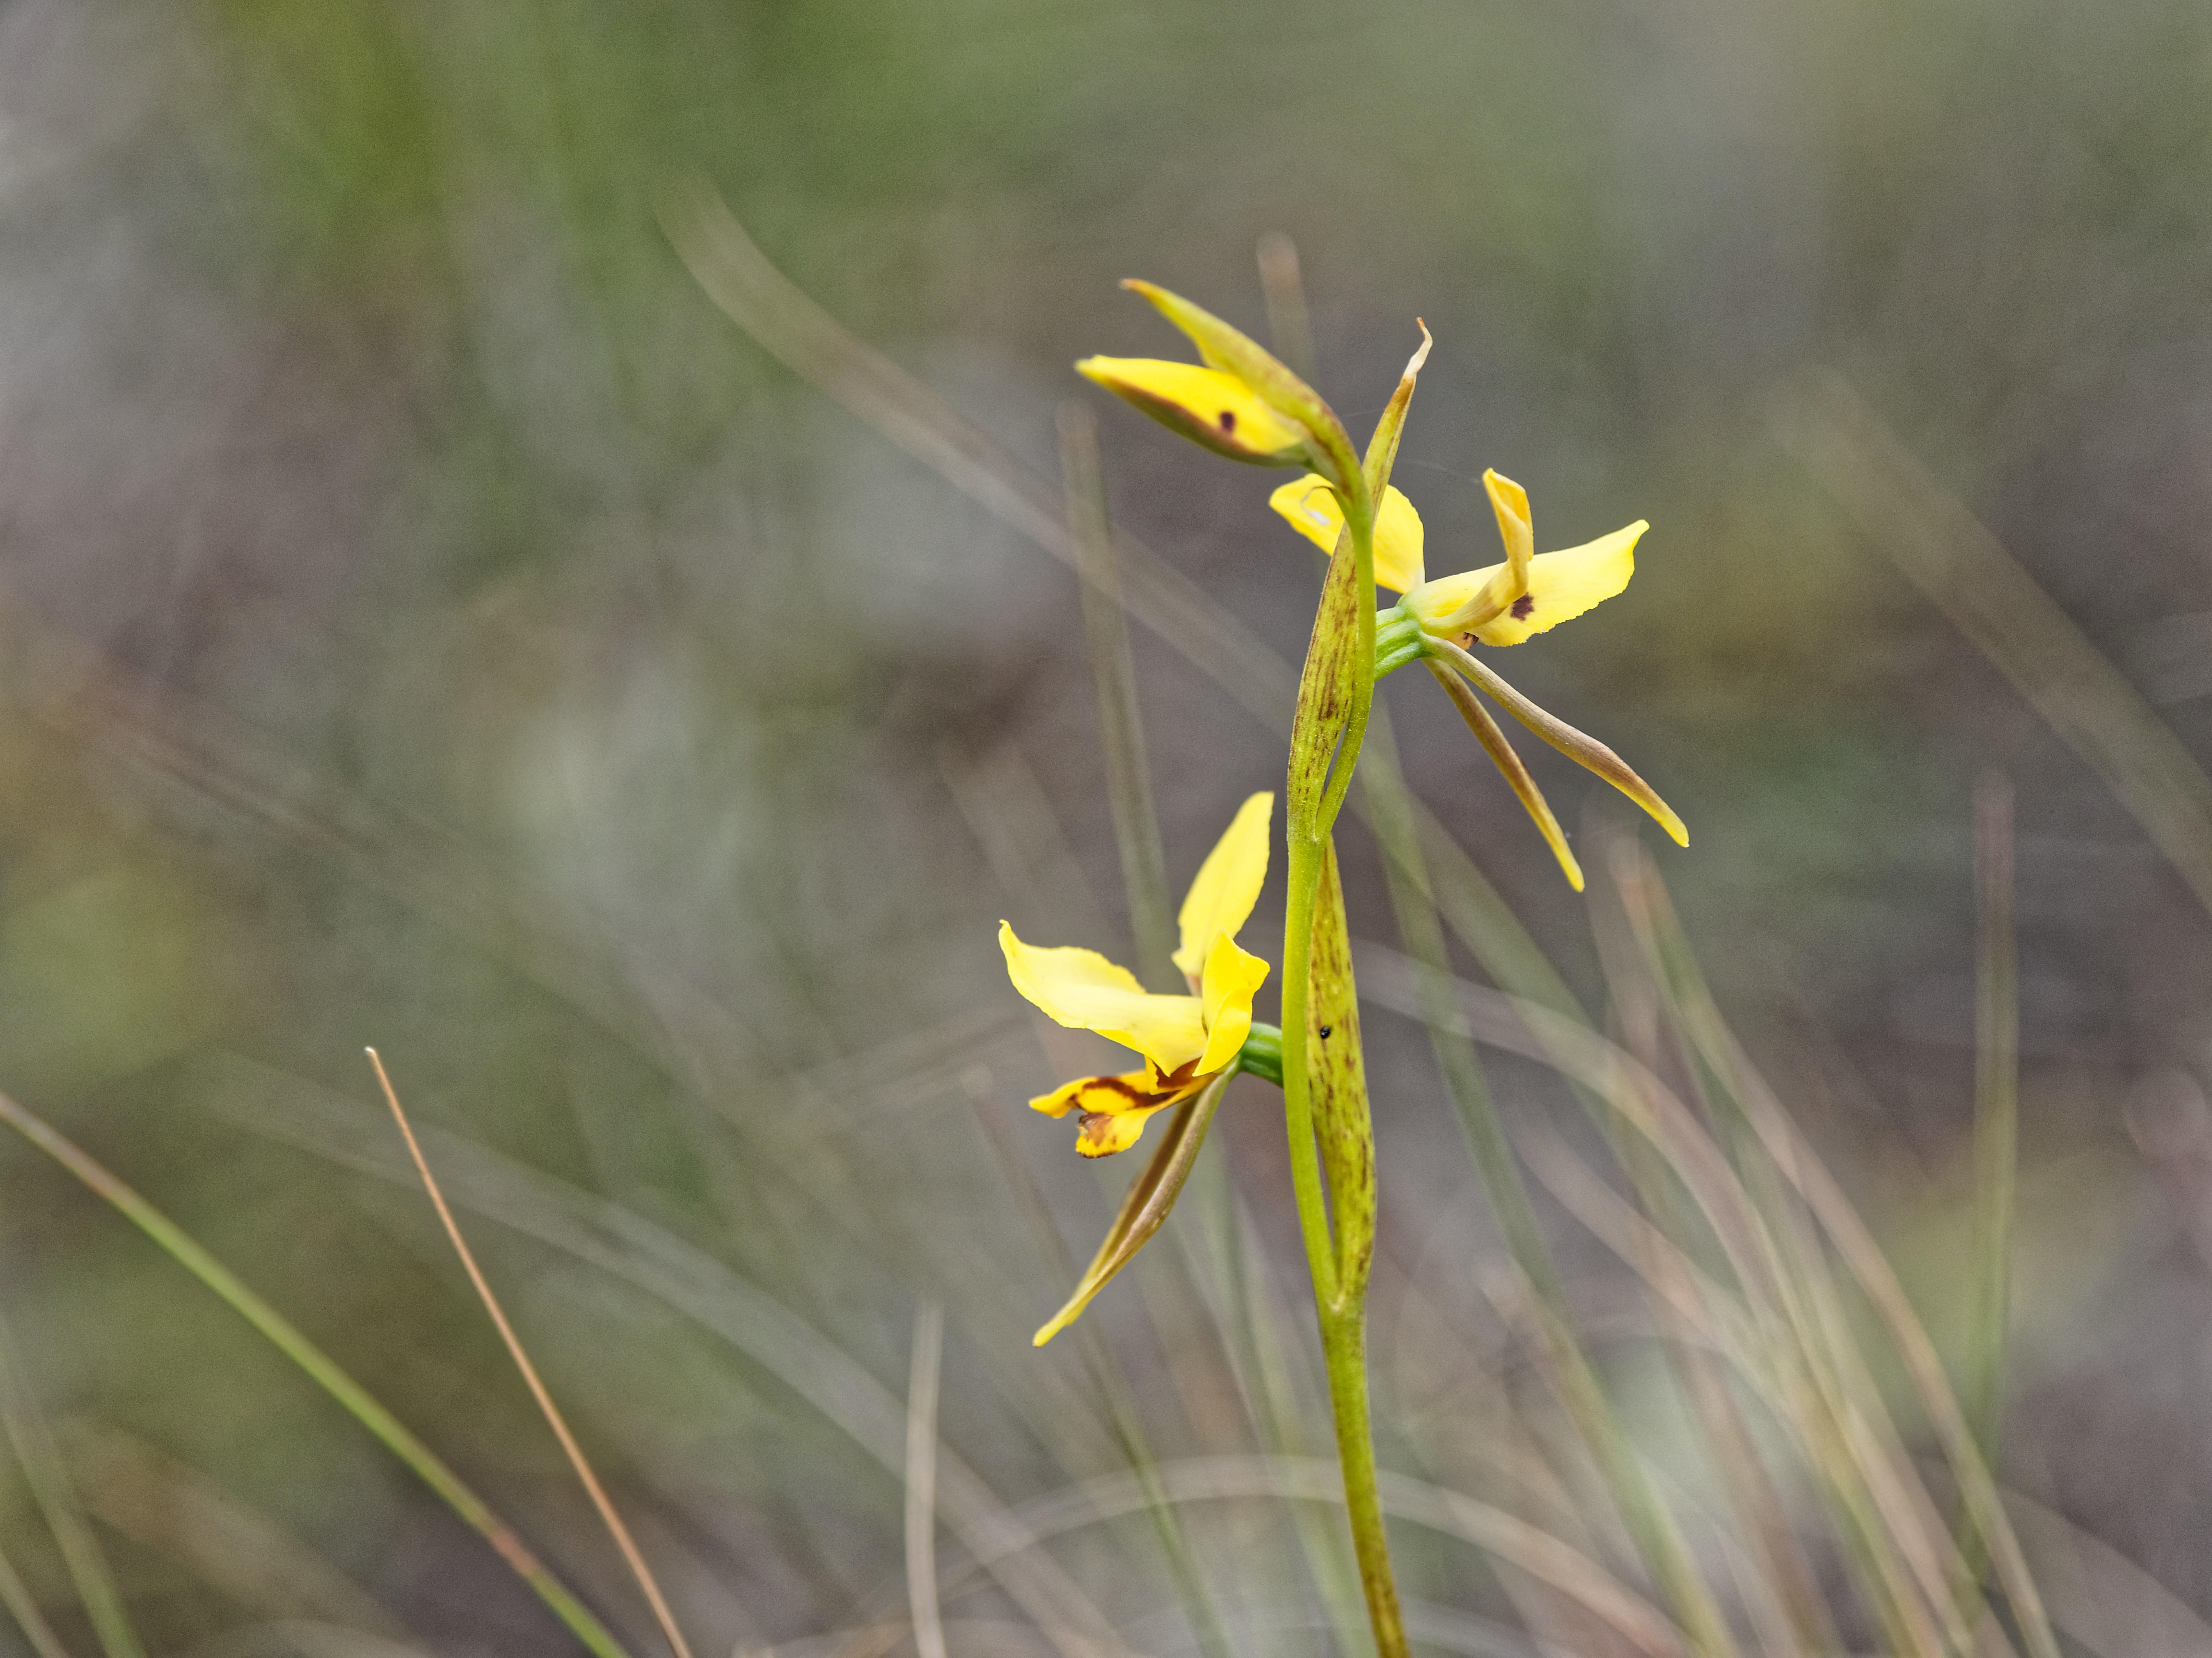 This should be Diuris-sulphurea-2.jpeg.  Is it missing?